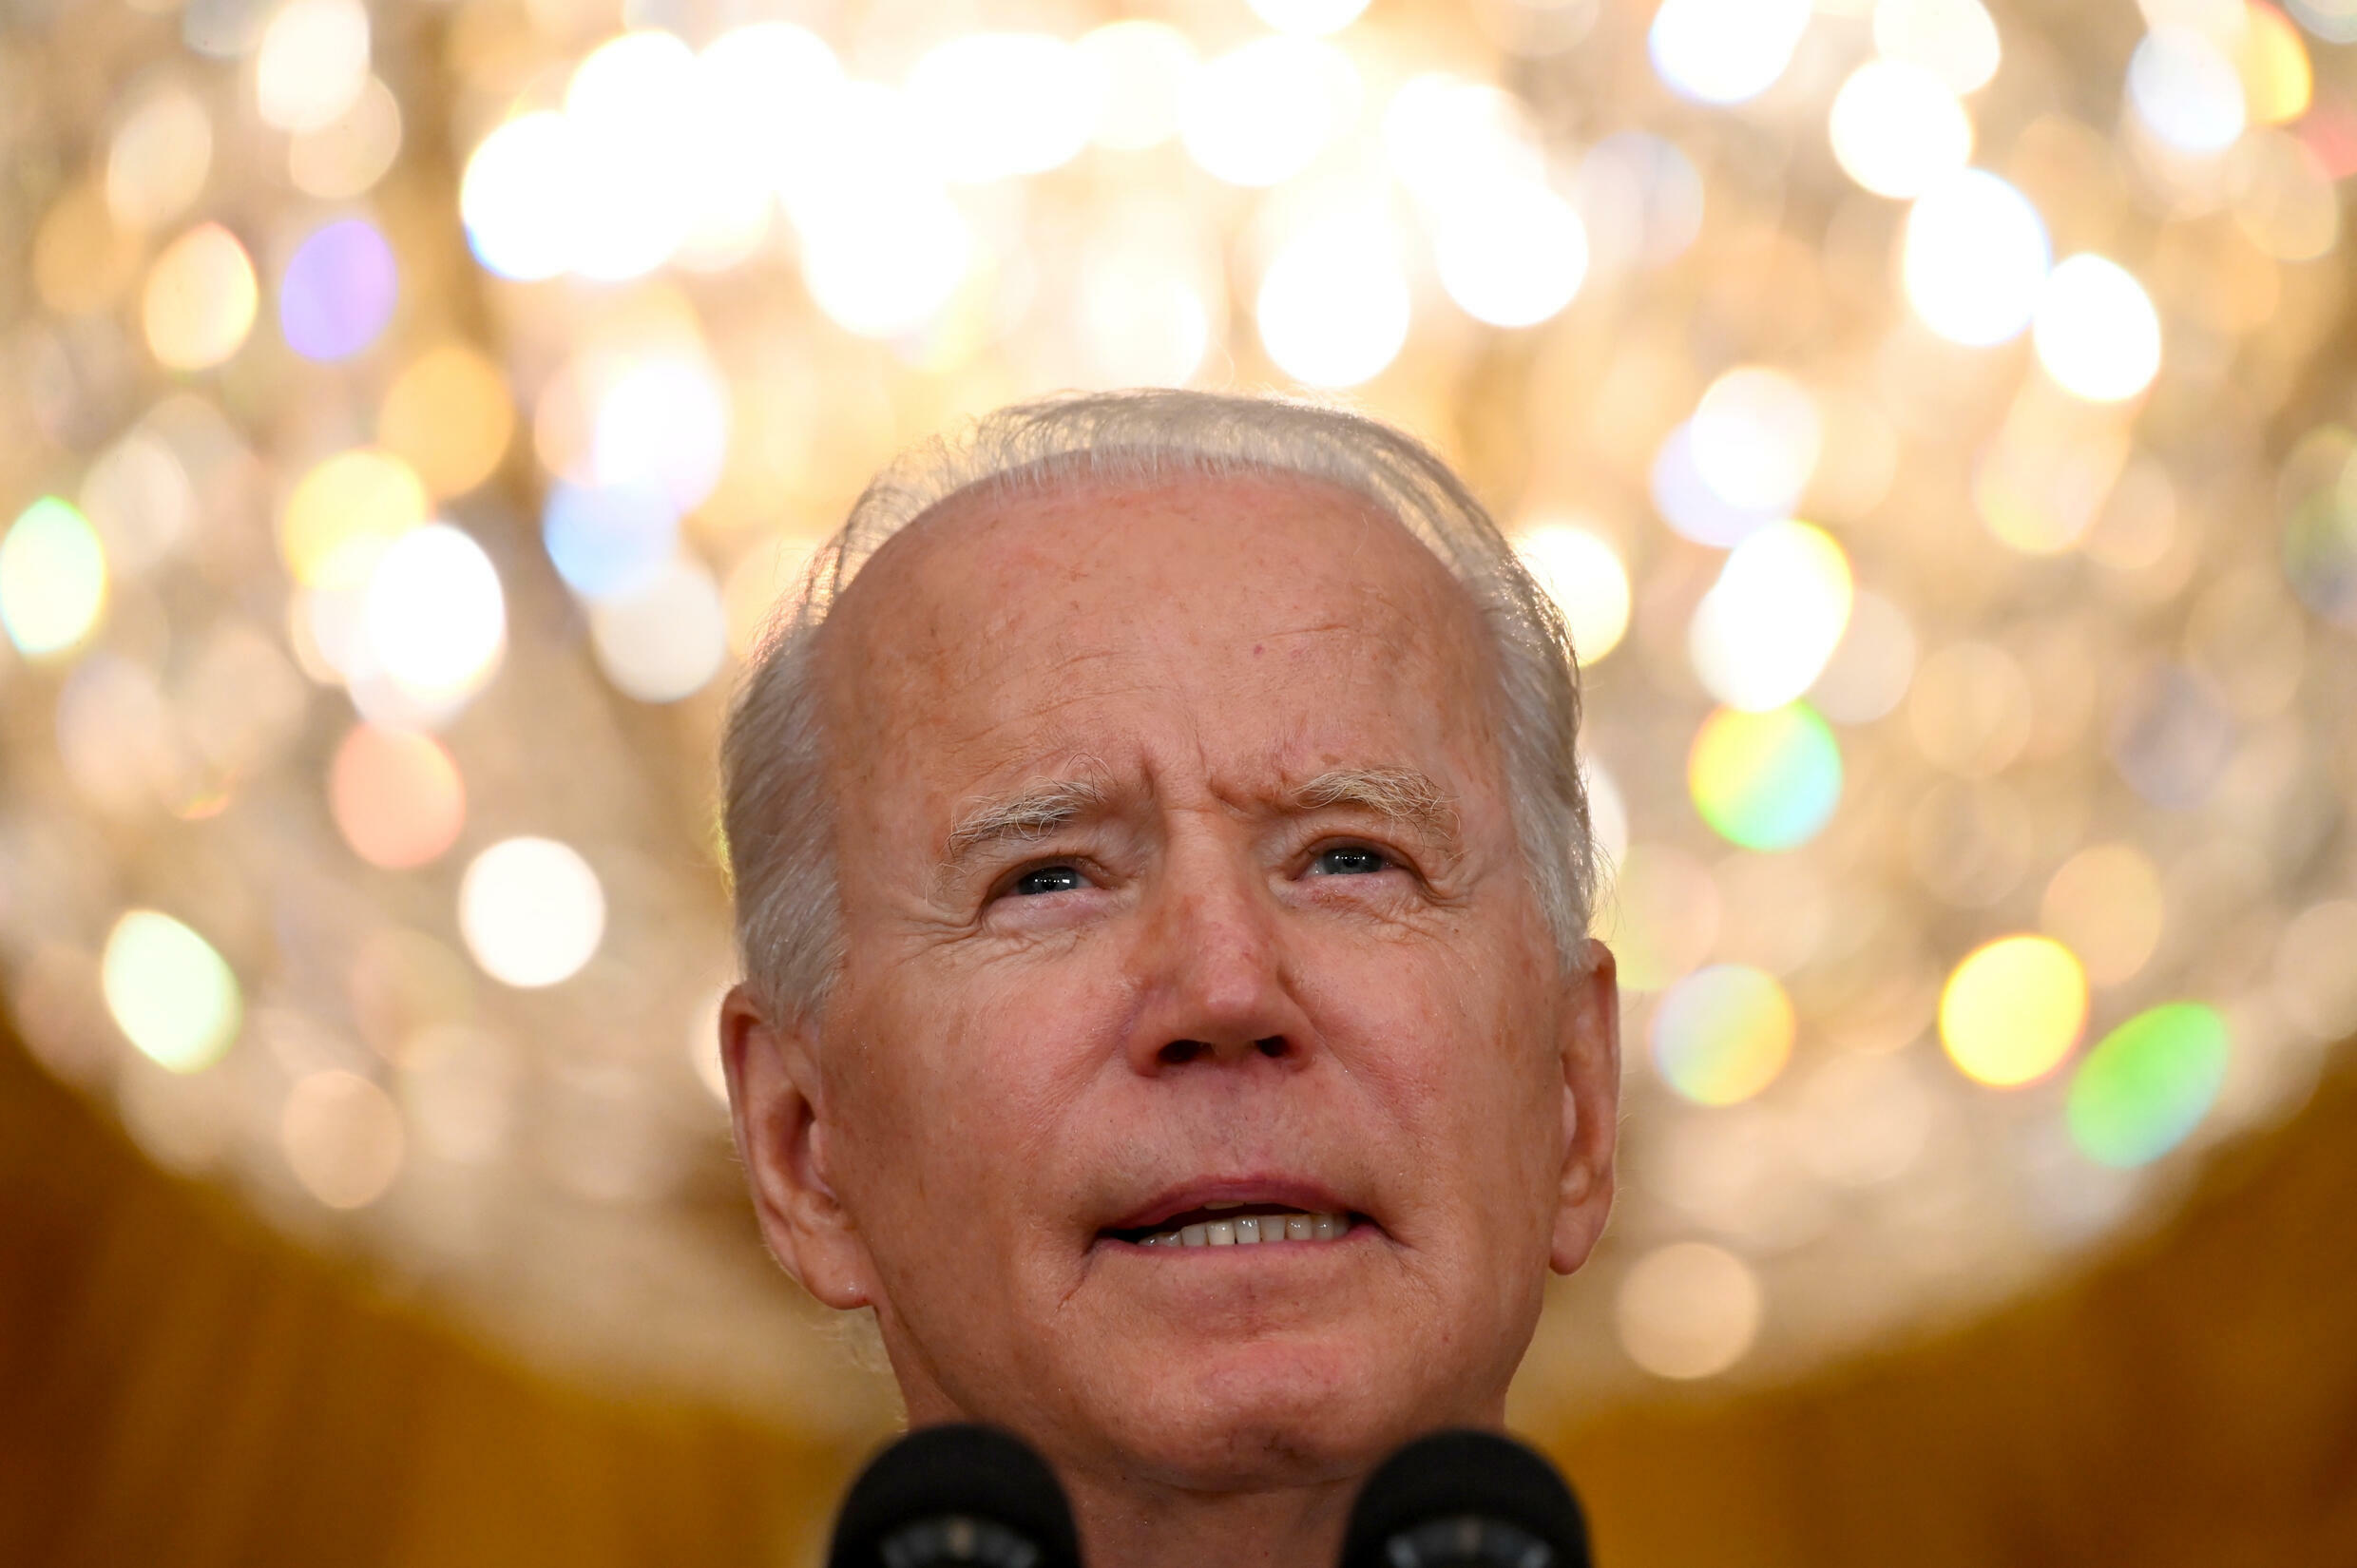 US President Joe Biden, shown at the White House on August 10, 2021, has made the comeback of democracy a theme under his presidency